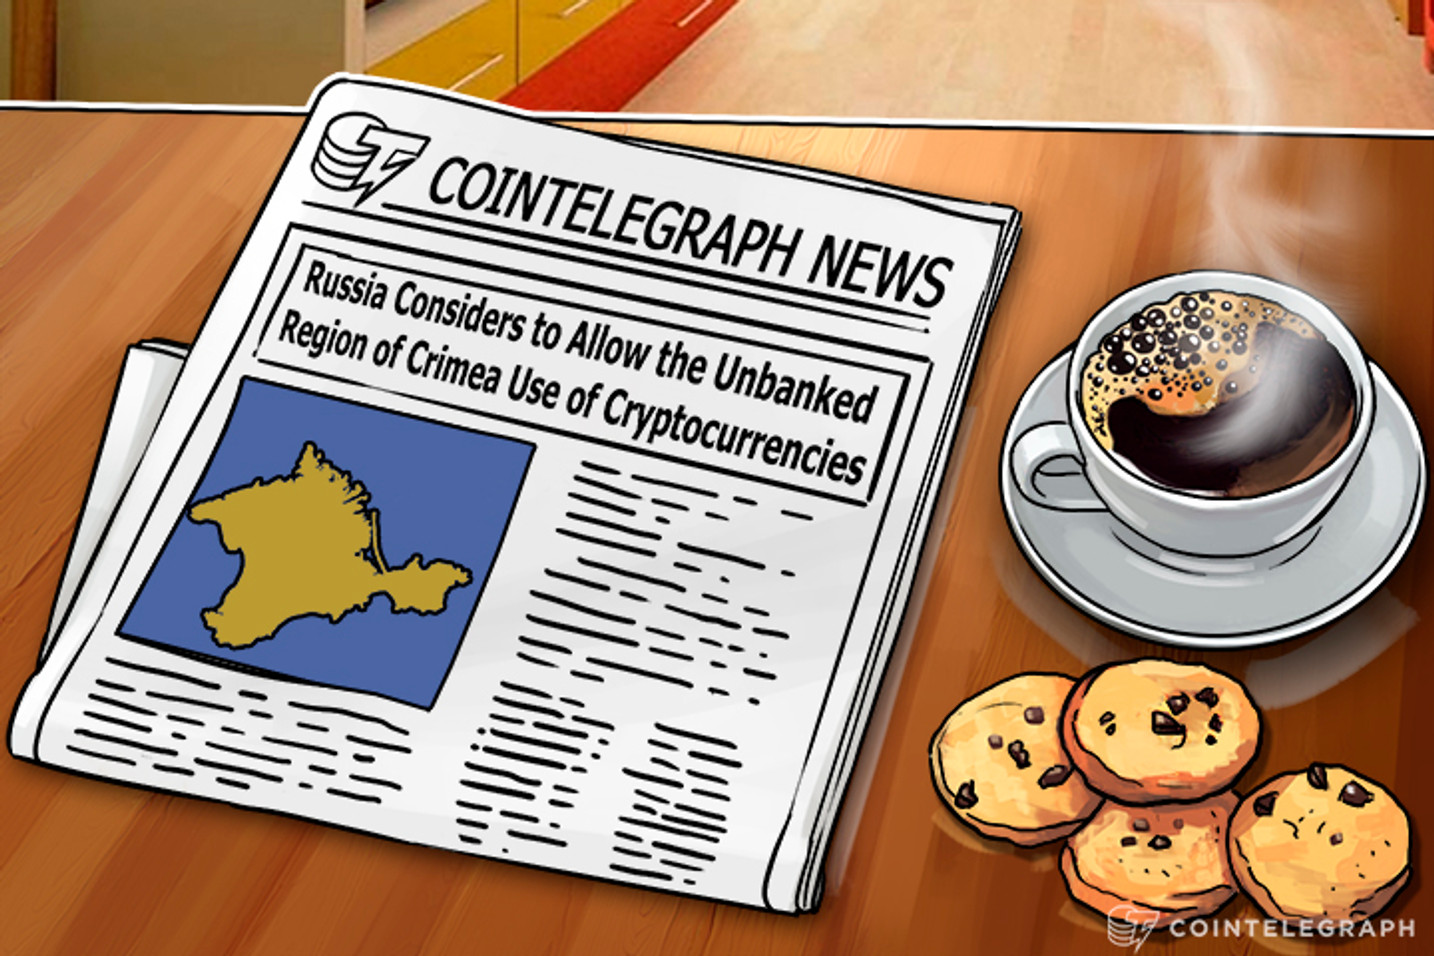 Russia Considers Allowing Use of Cryptocurrency in the Unbanked Region of Crimea